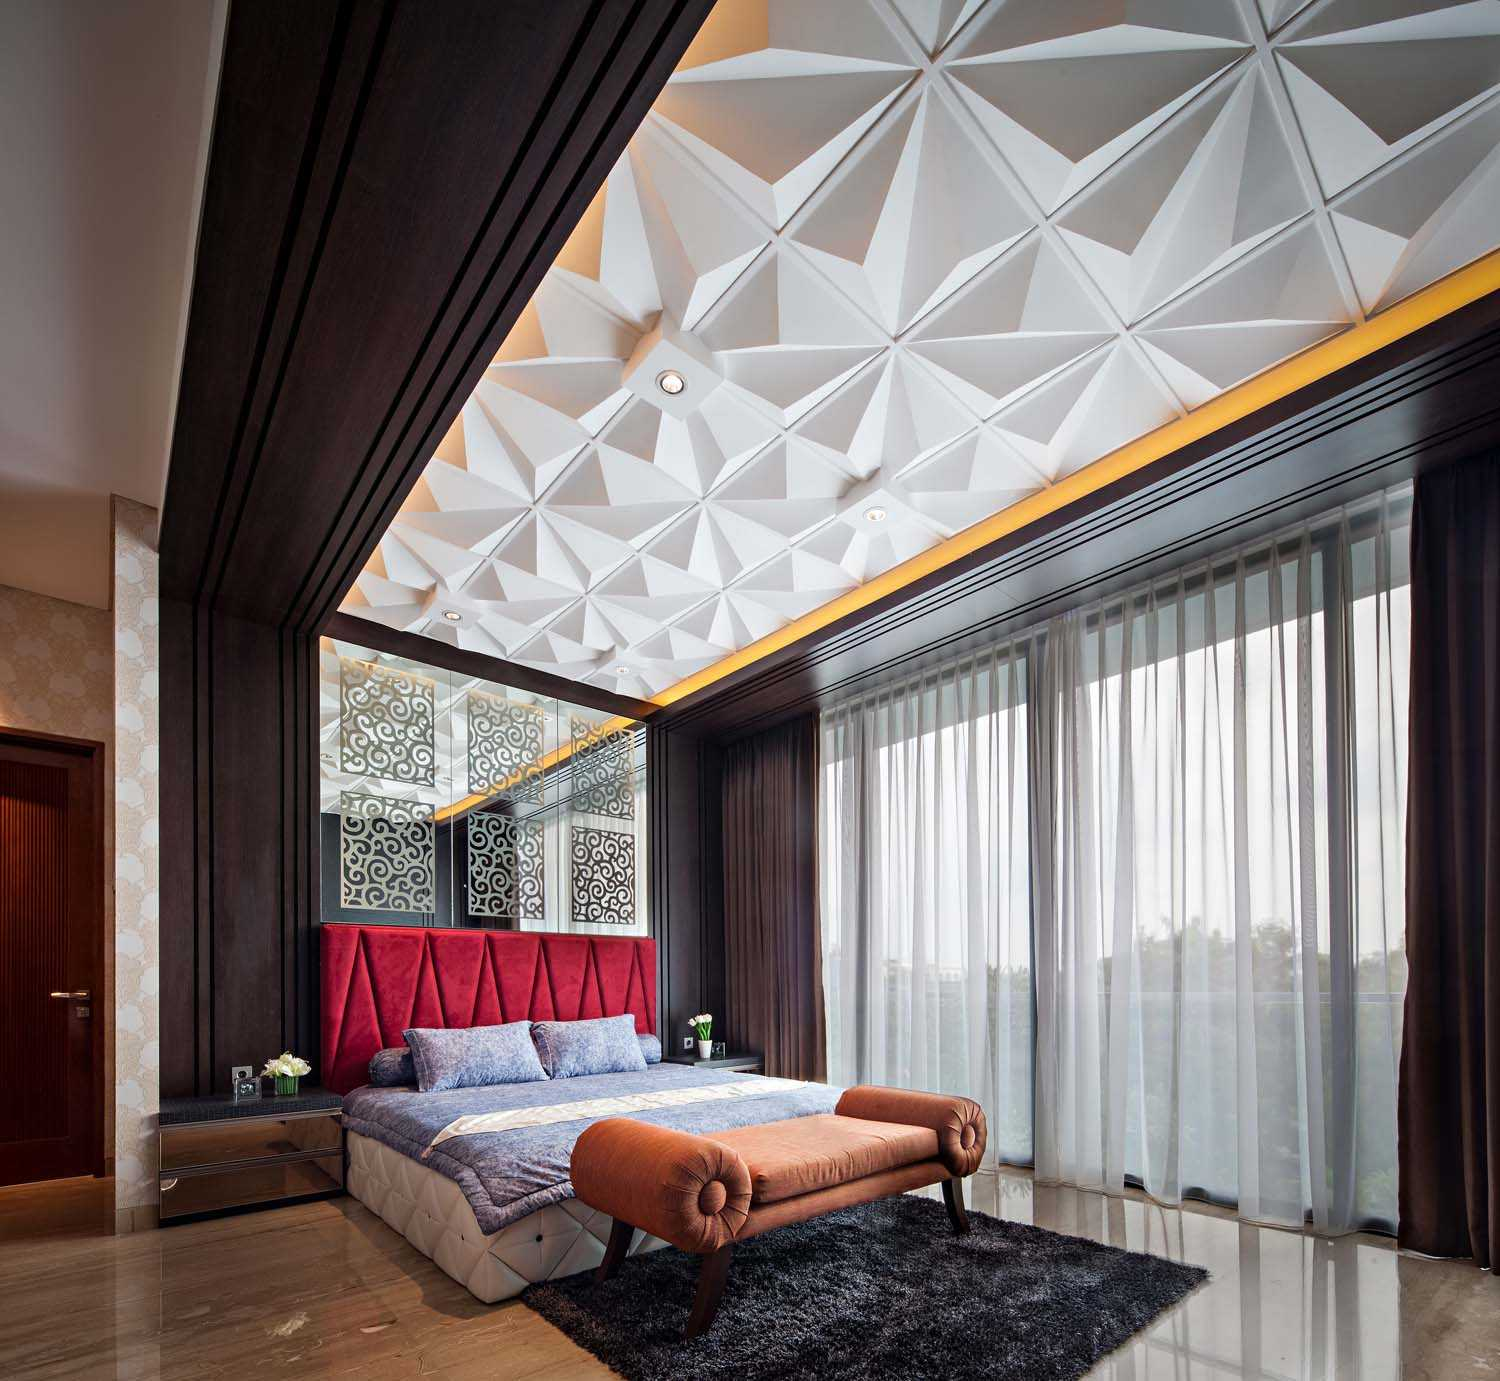 Dp+Hs Architects F+W House Jakarta, Indonesia Jakarta, Indonesia Master Bedroom Contemporary,modern 8531